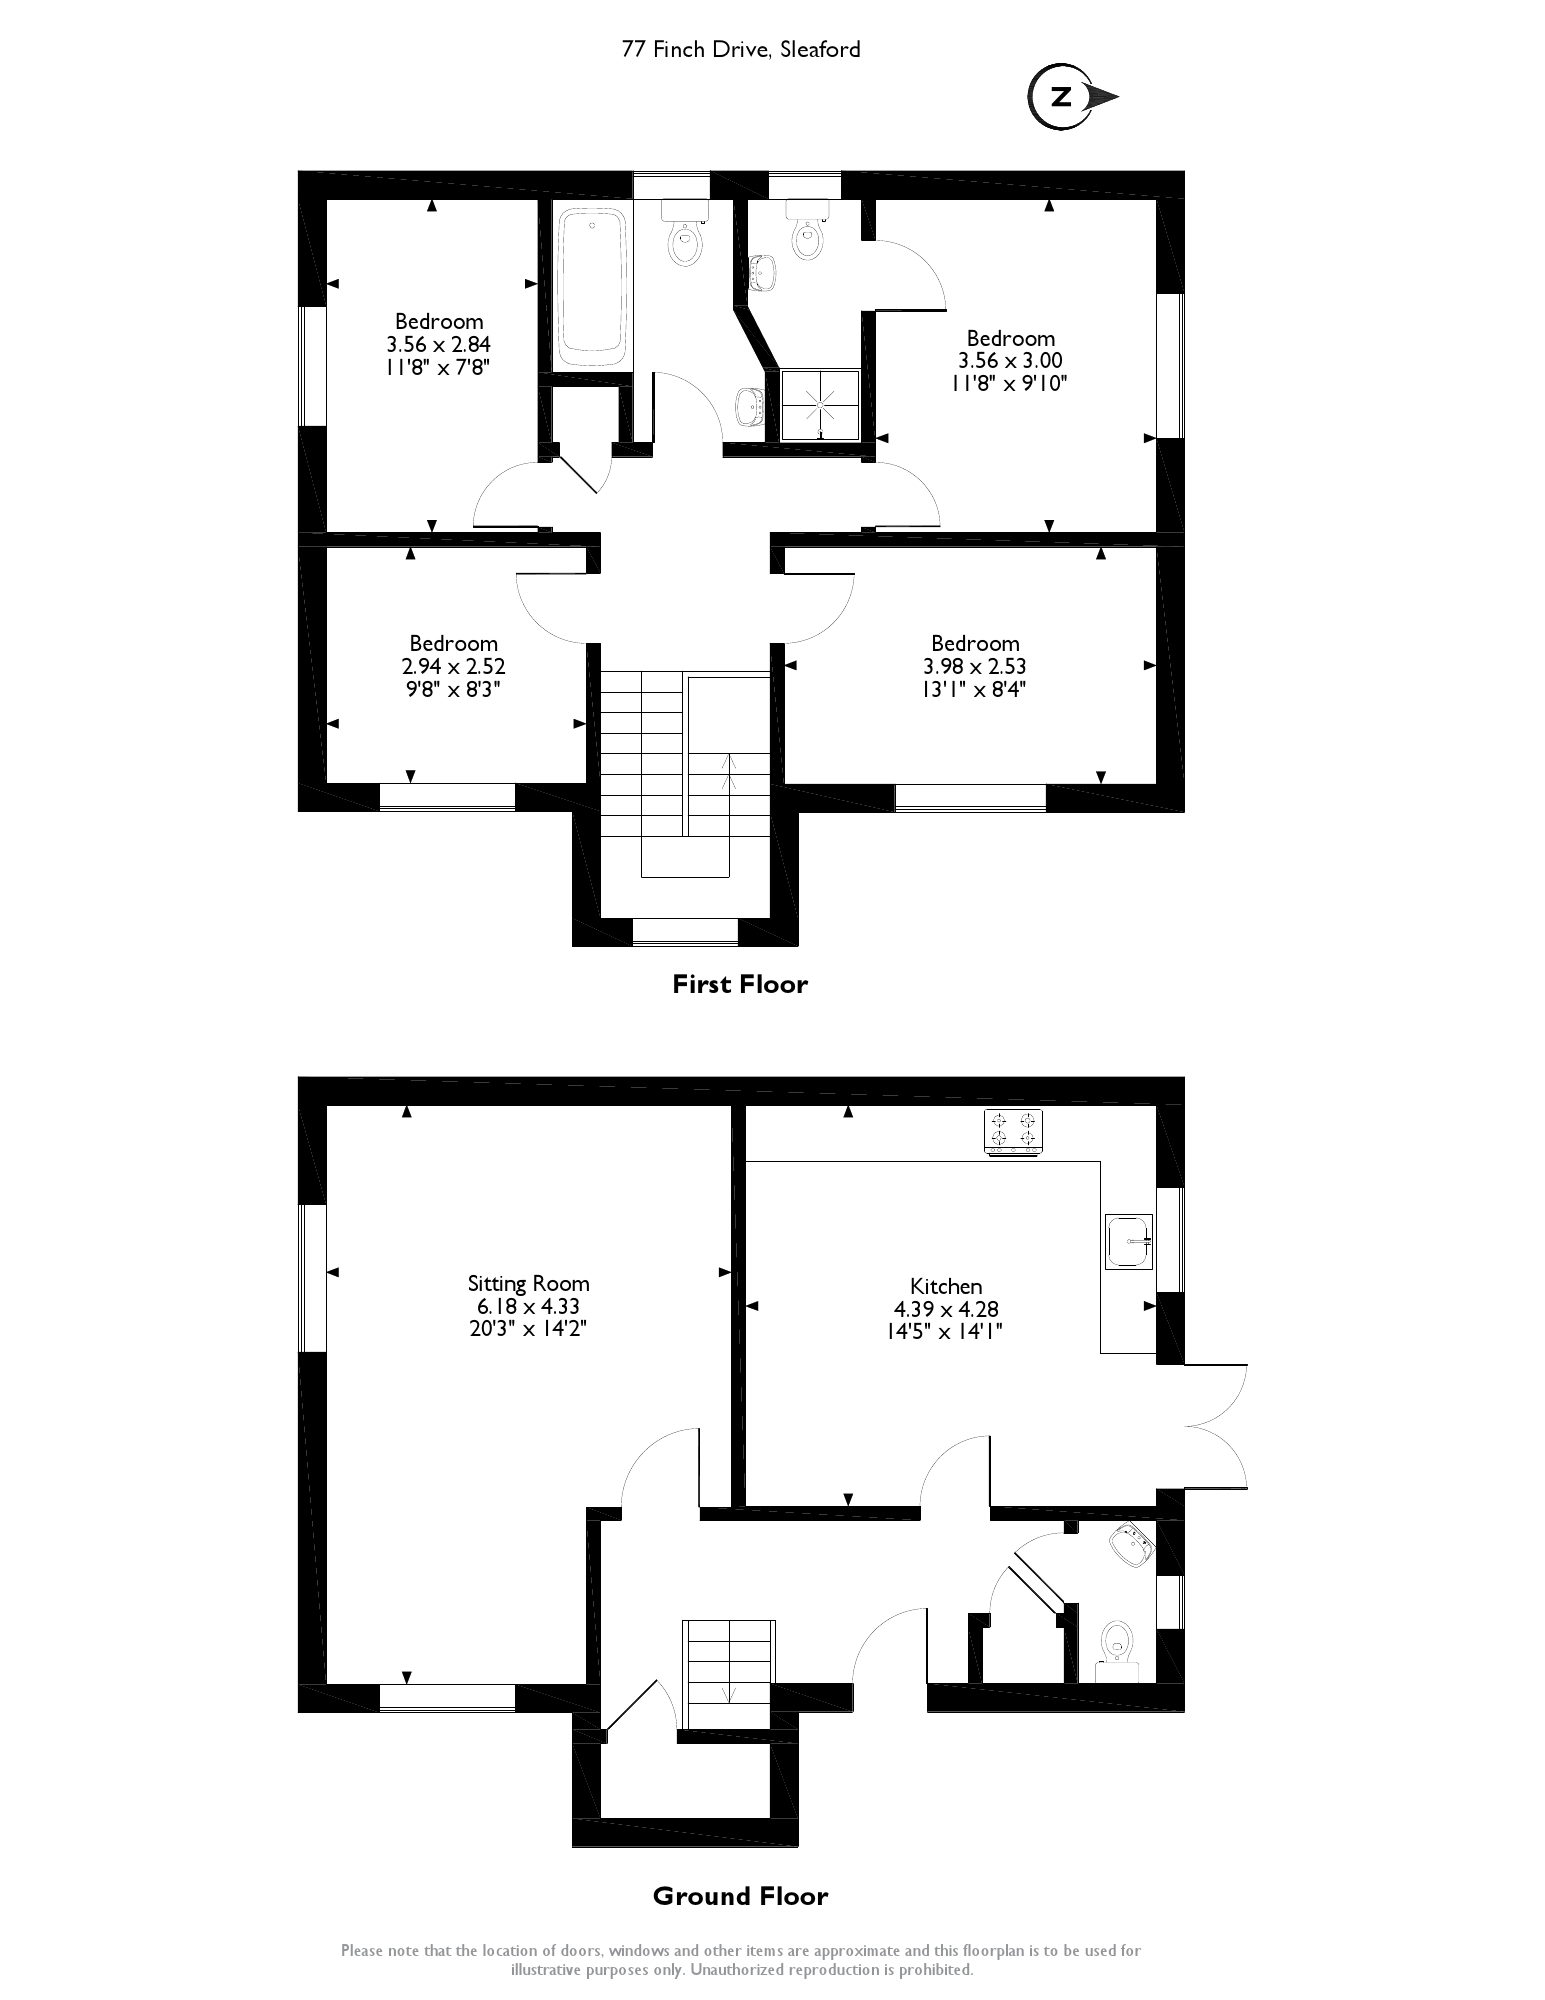 Finch Drive, Sleaford, NG34 floor plan